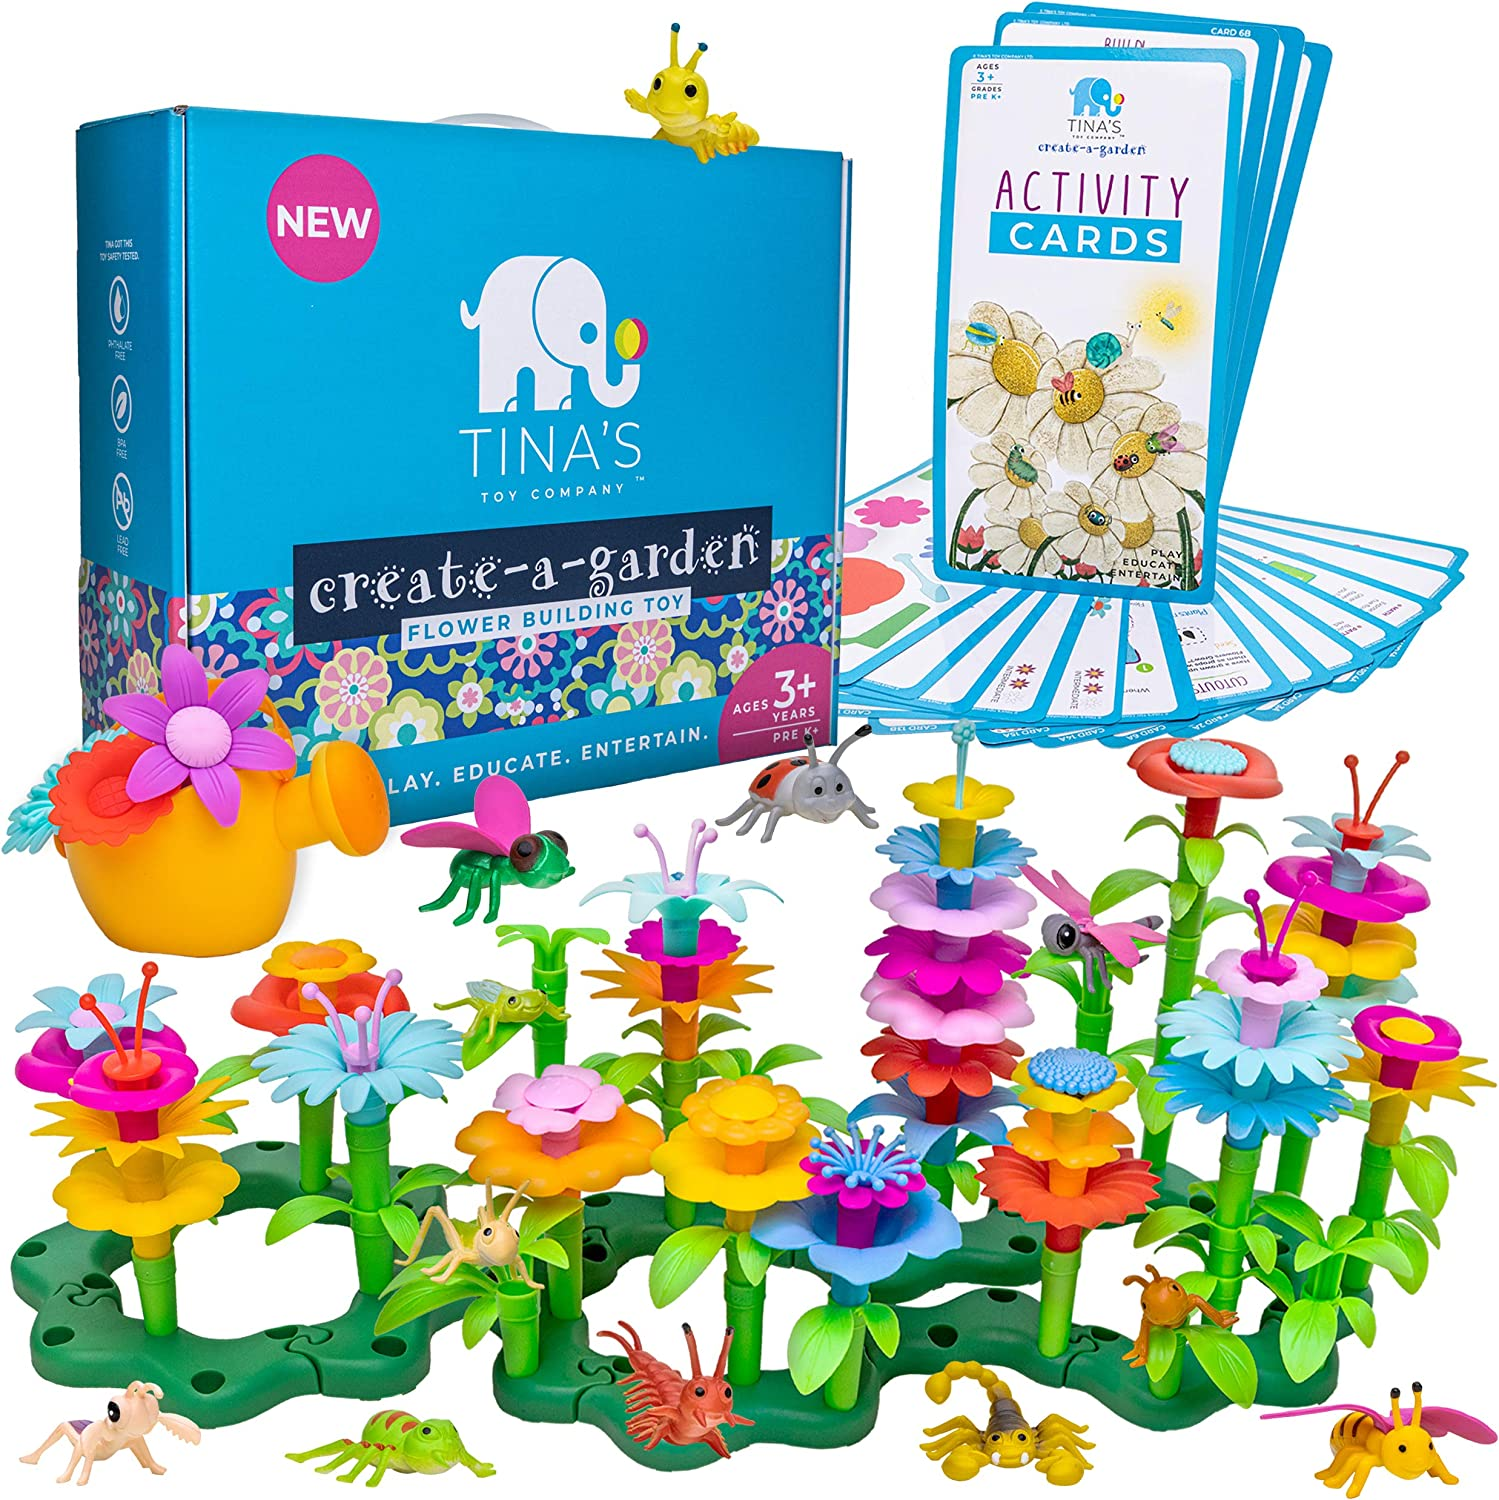 Flower Garden Building Toys Set, Educational Stem Toys for 3, 4, 5, 6 Year Old Girl, Arts and Crafts for Girls, Toddler Building Birthday Gift, Easter, Montessori Kindergarten Learning Kit for Kids